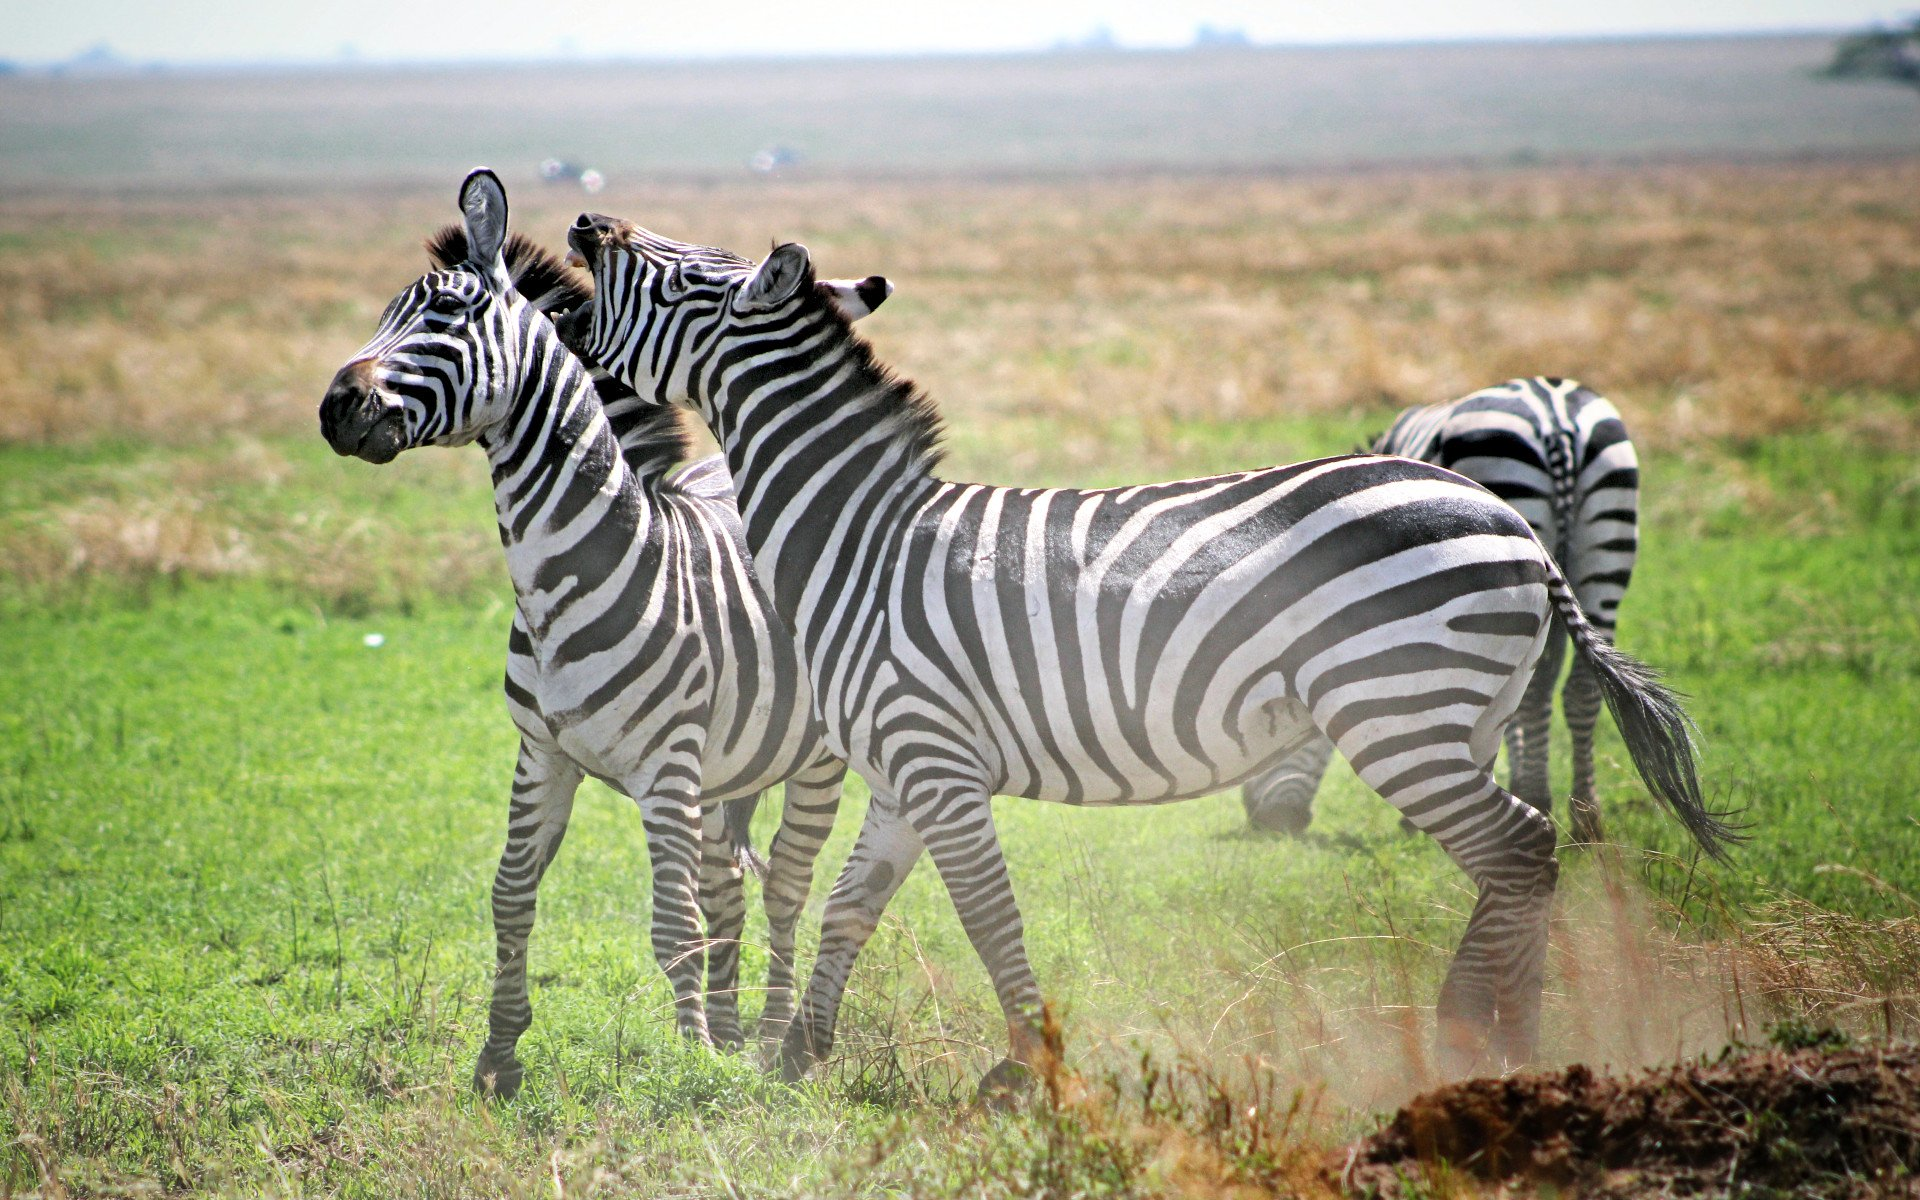 Places to spot Zebras: Lewa Wildlife Conservancy in Northern Kenya and Masai Mara National Park.